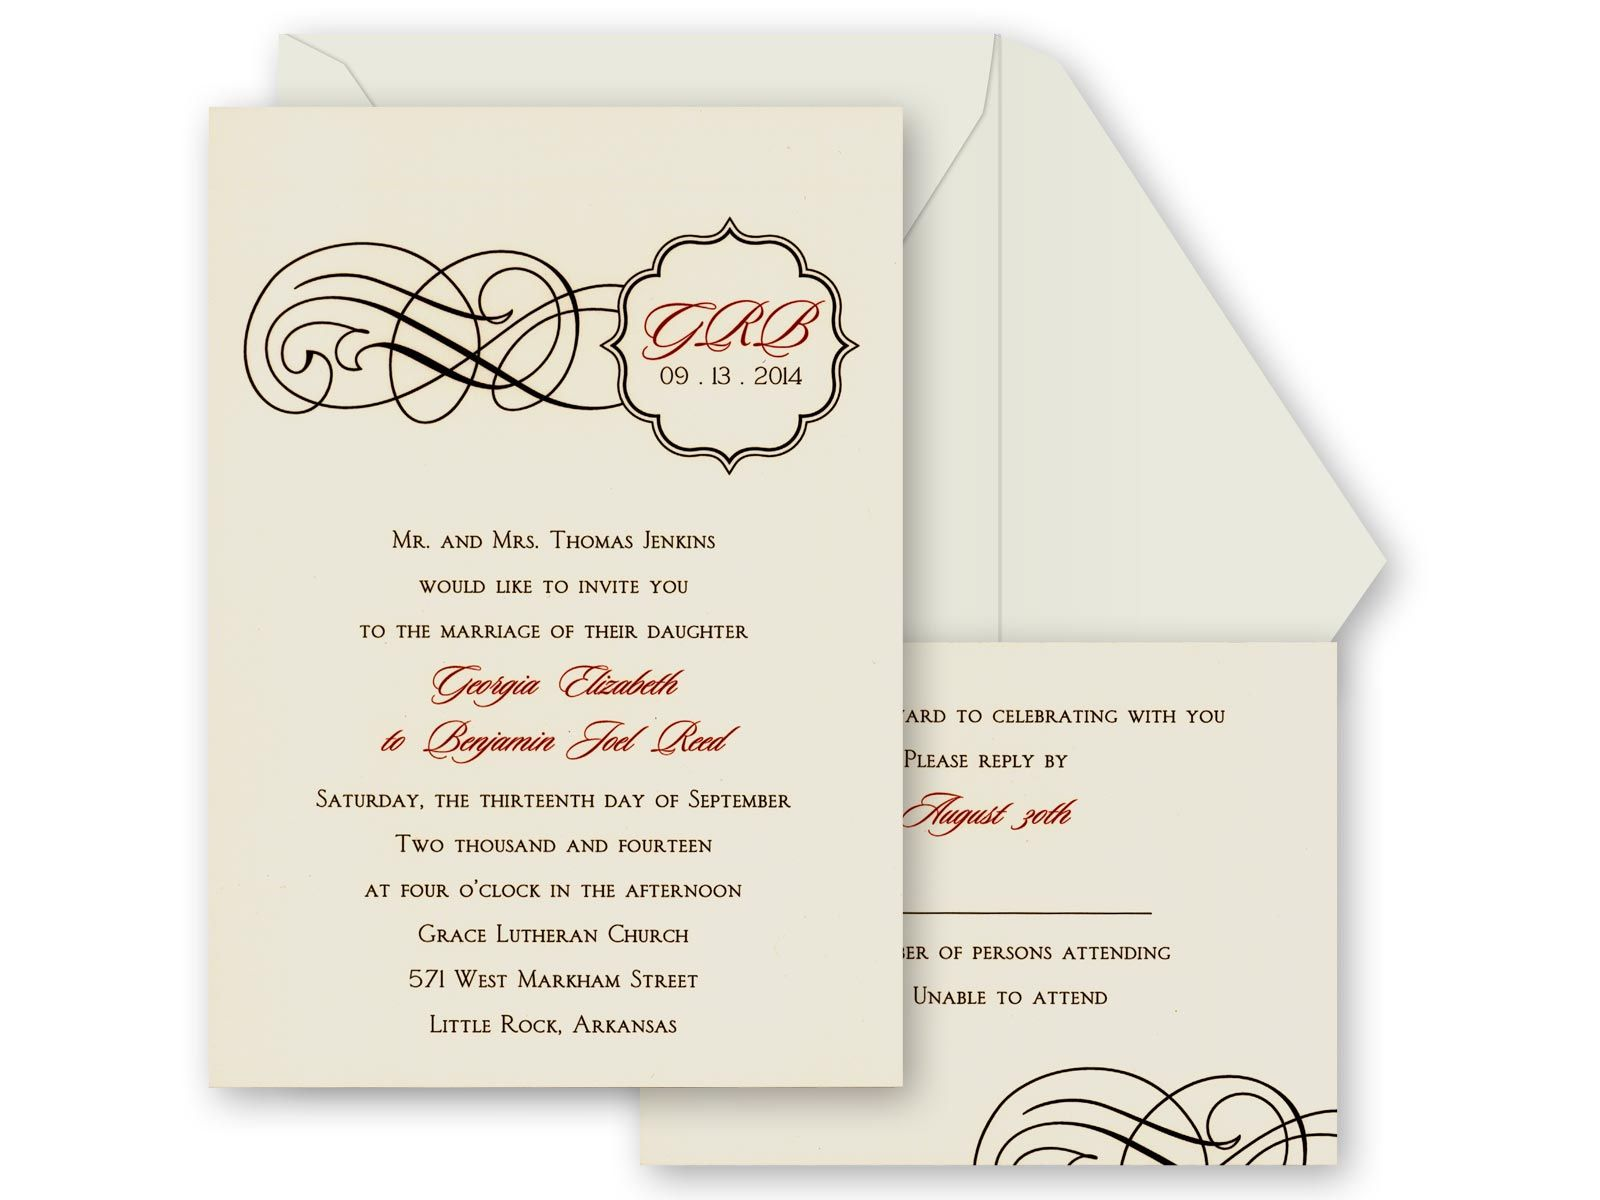 Wording Of Wedding Invitations: Unique Wedding Invitation Wording Religious